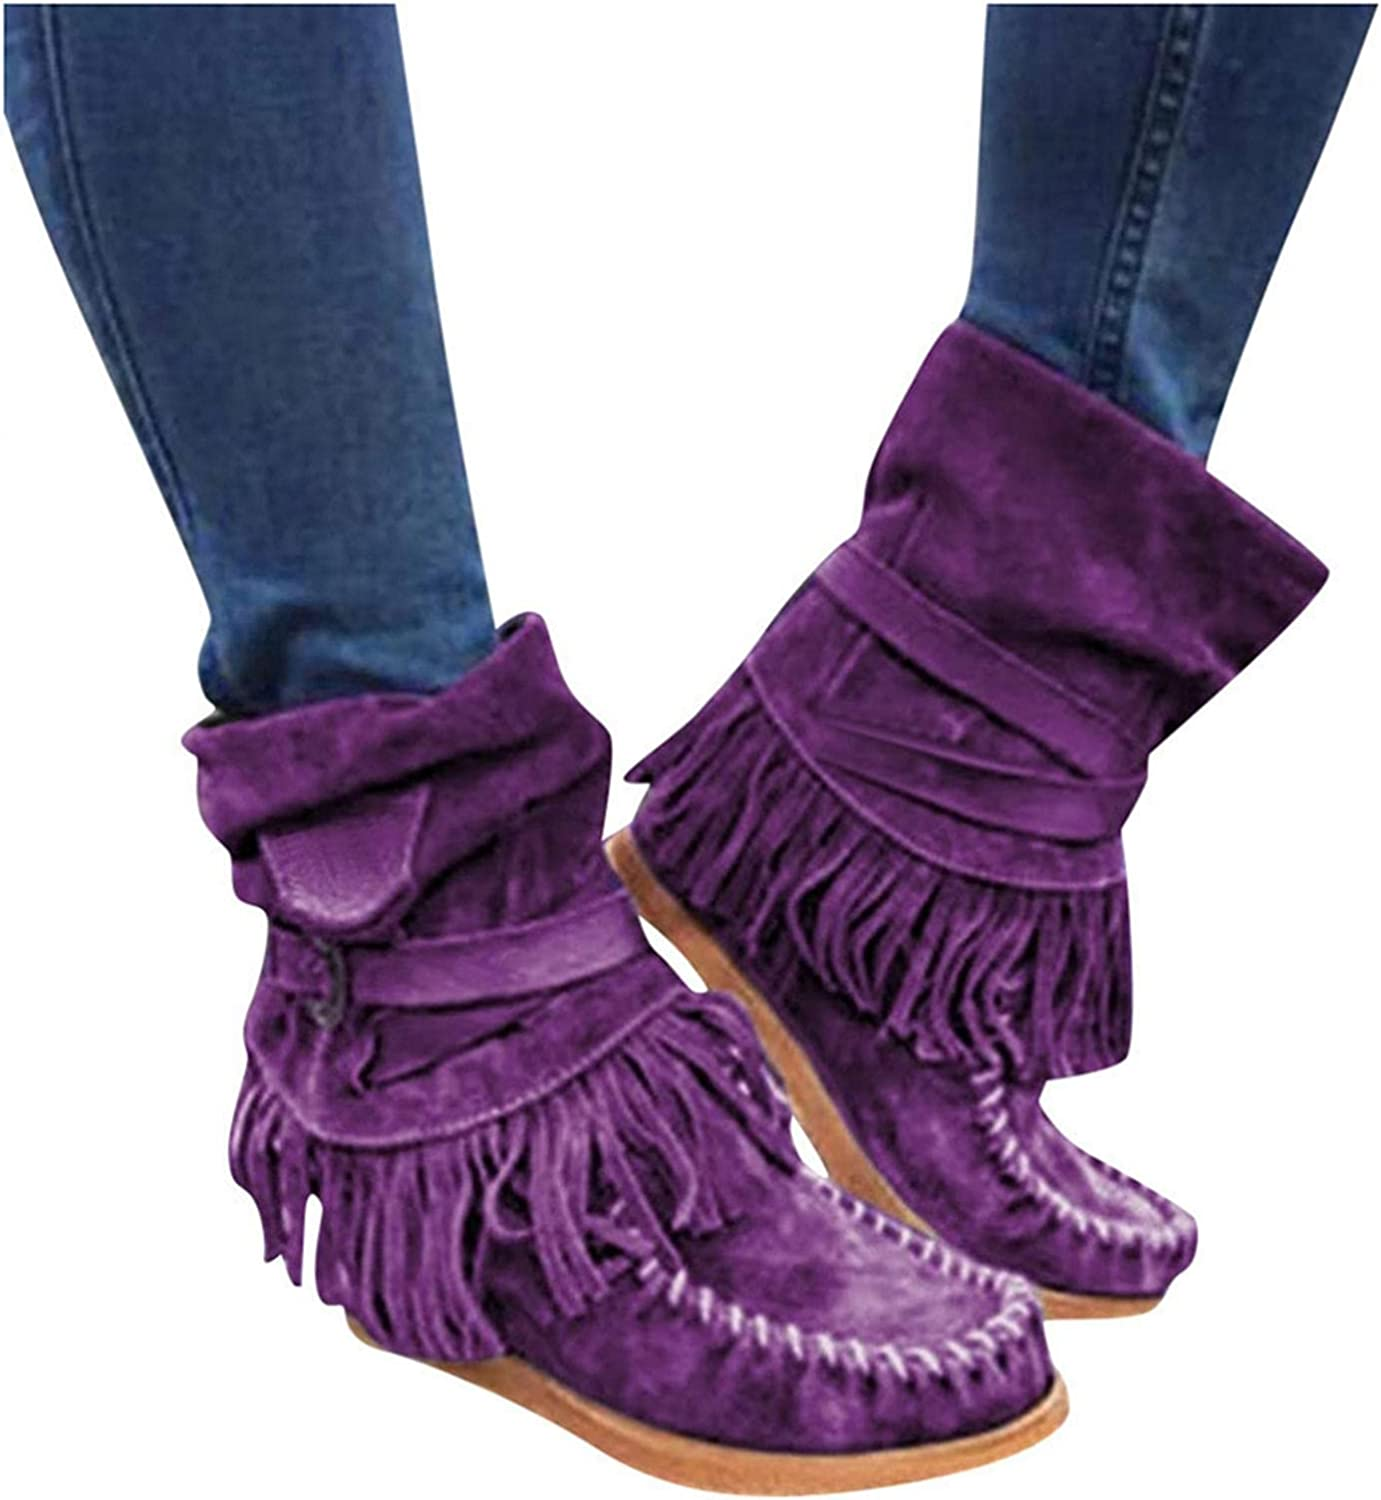 Cowboy Tassel Ankle Boots for Women Winter Warm Faux Suede Fring